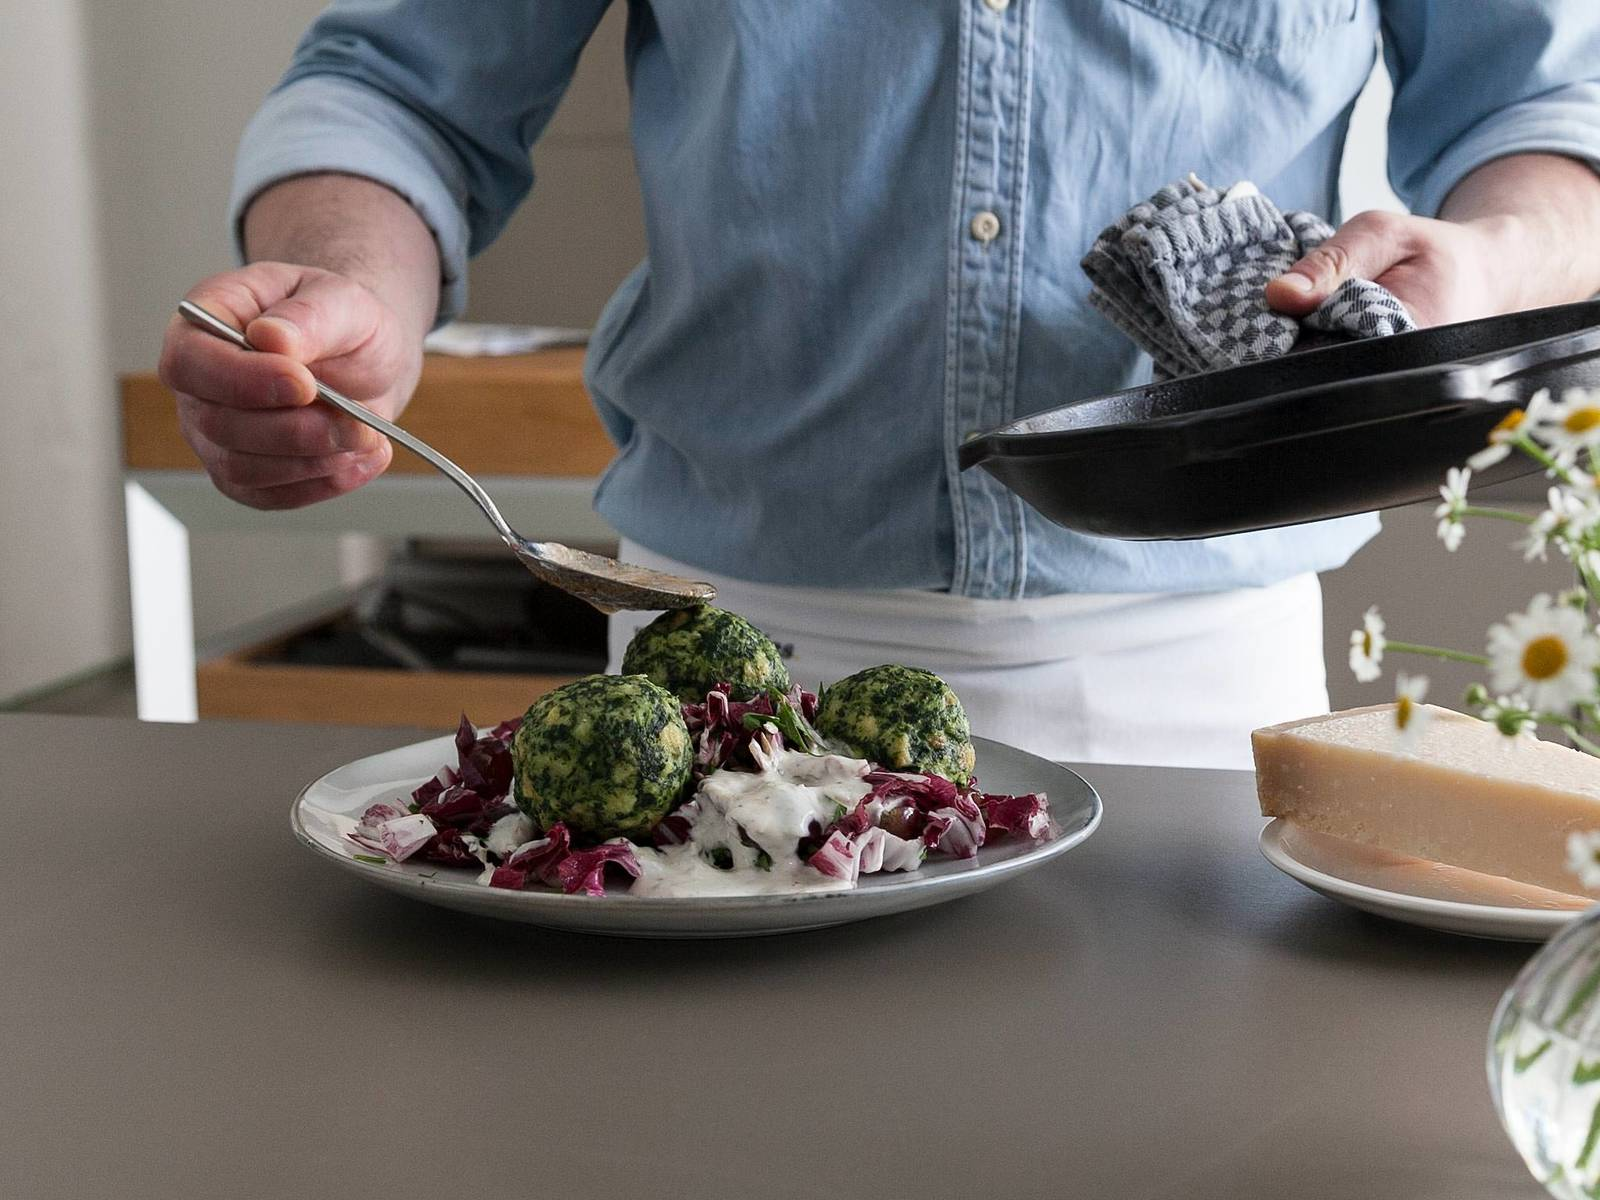 Melt butter in a small frying pan on medium heat. Reduce heat and fry butter for approx. 8 min., or until browned. Serve salad on a plate and drizzle yogurt dressing on top. Add spinach dumplings, drizzle with brown butter, and enjoy with freshly grated Parmesan!